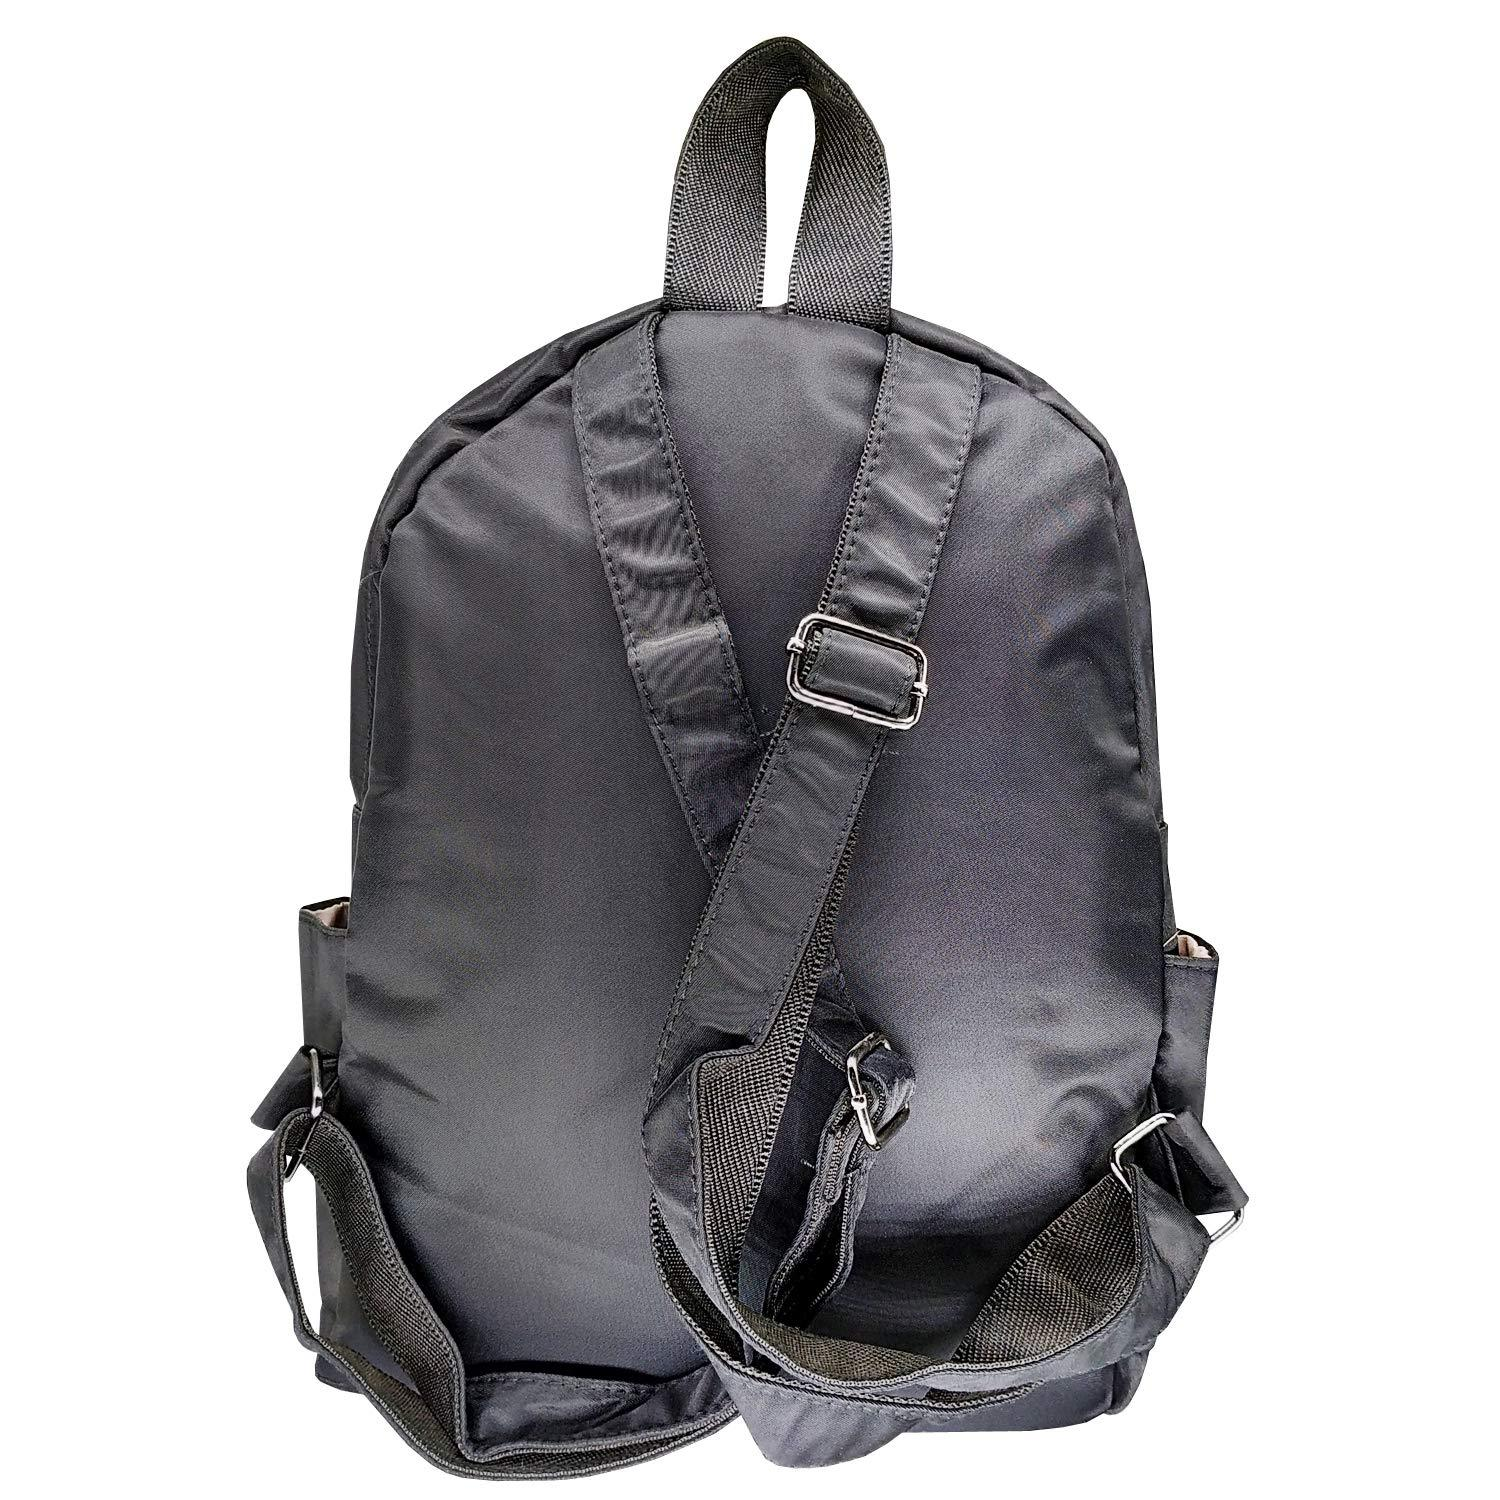 Artificial Leather Student Backpack For Girls (Black) - Bagaholics Gift